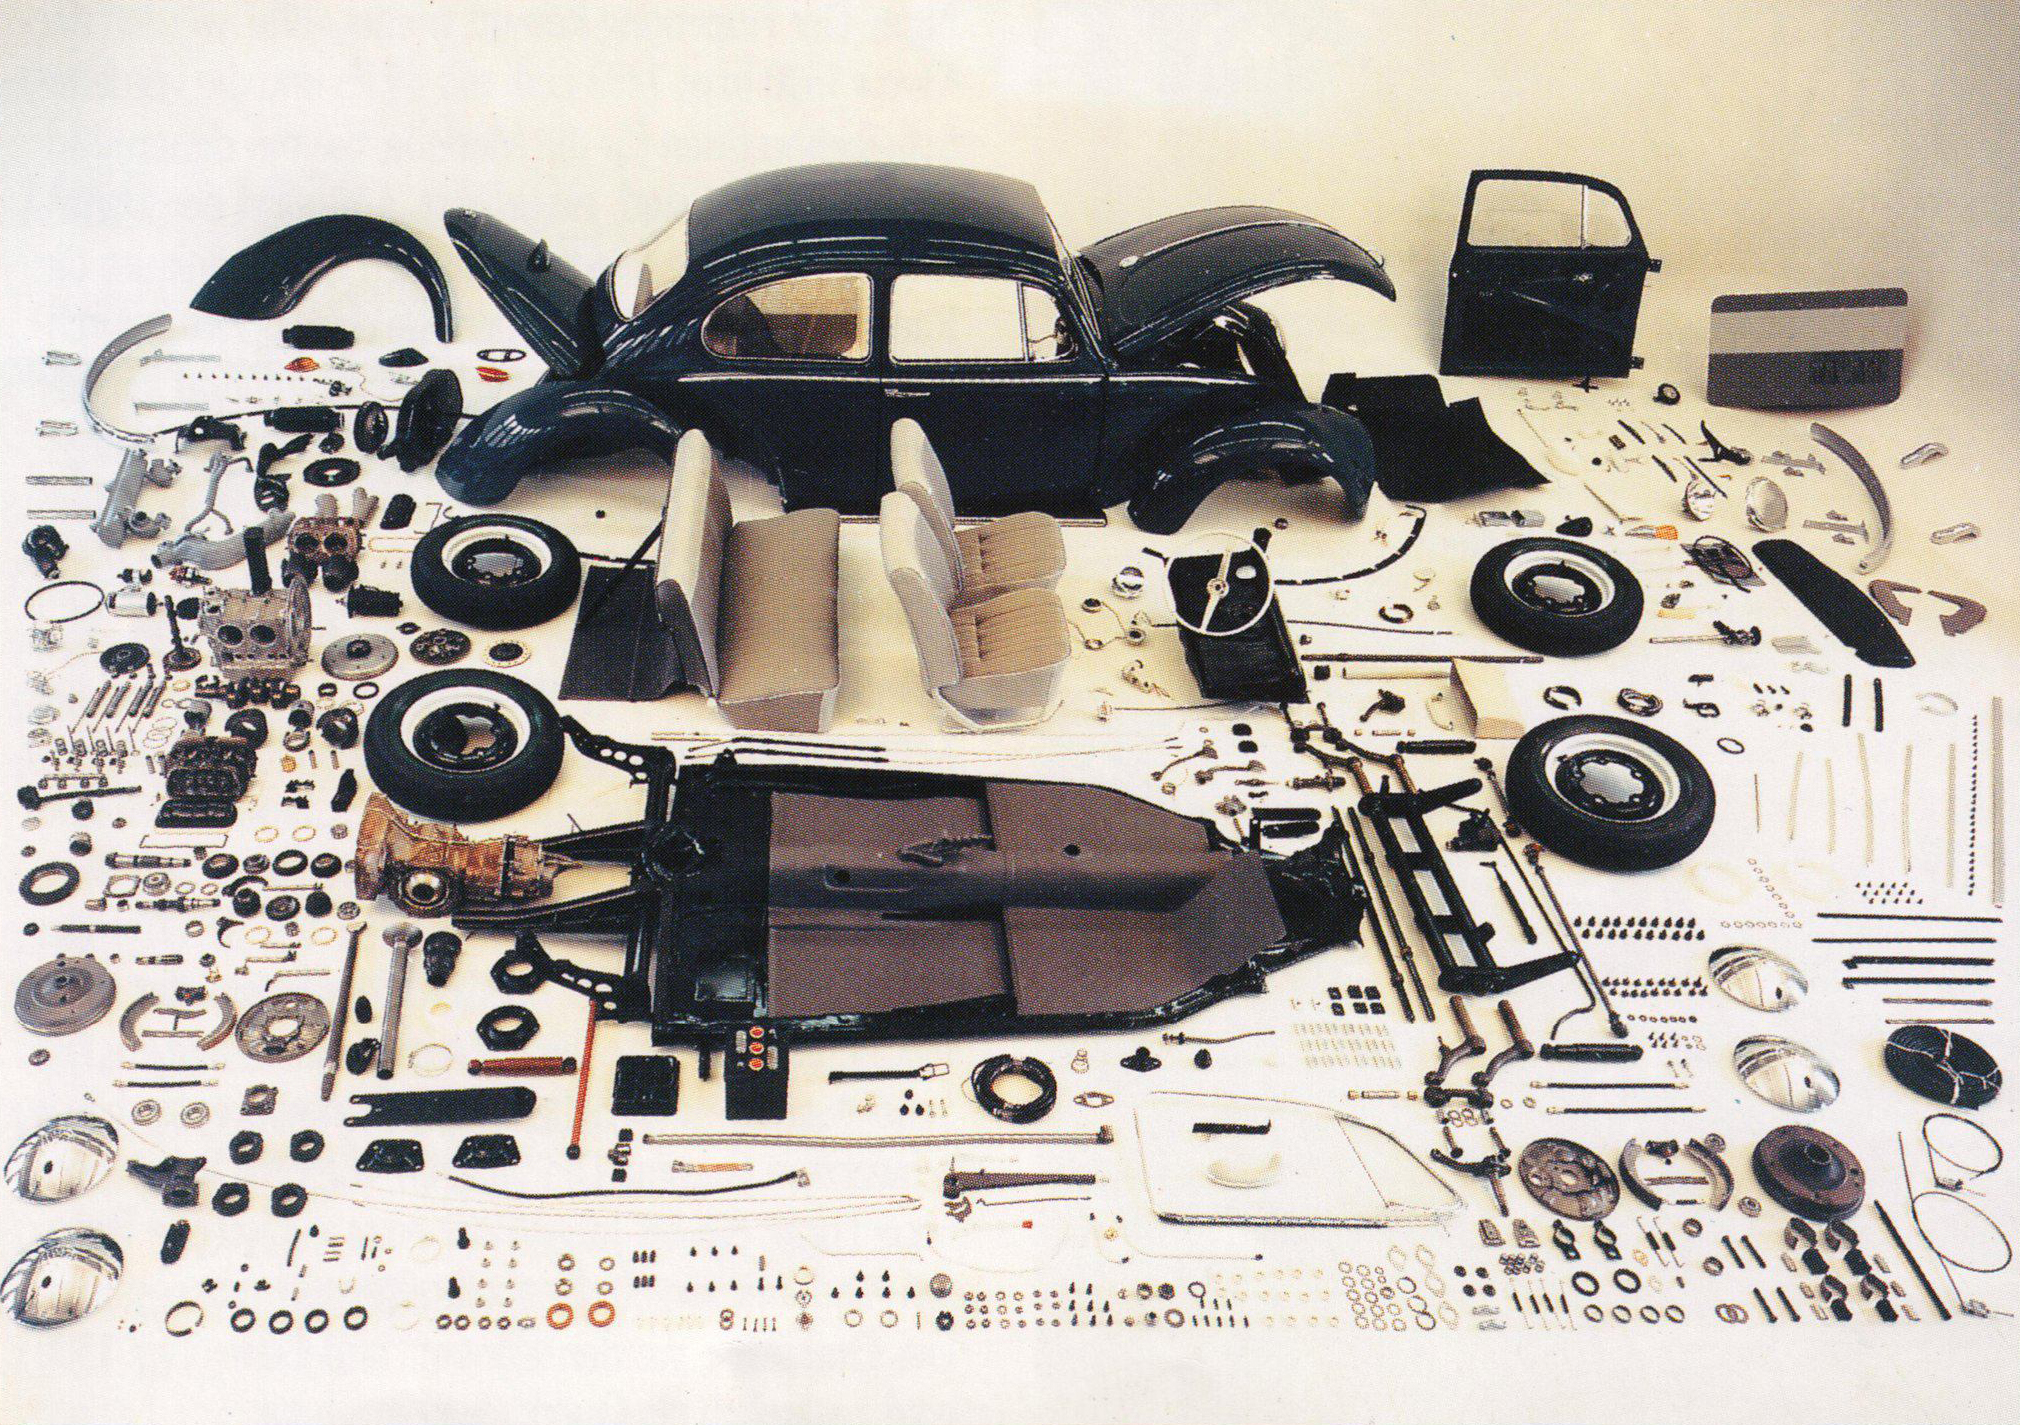 225576 Diagram Vacuum Hoses together with Imp Sensor Location additionally 67 Beetle Reverse Lights moreover VW Tech Article 1960 61 Wiring likewise Explodedview. on vw new beetle parts diagram